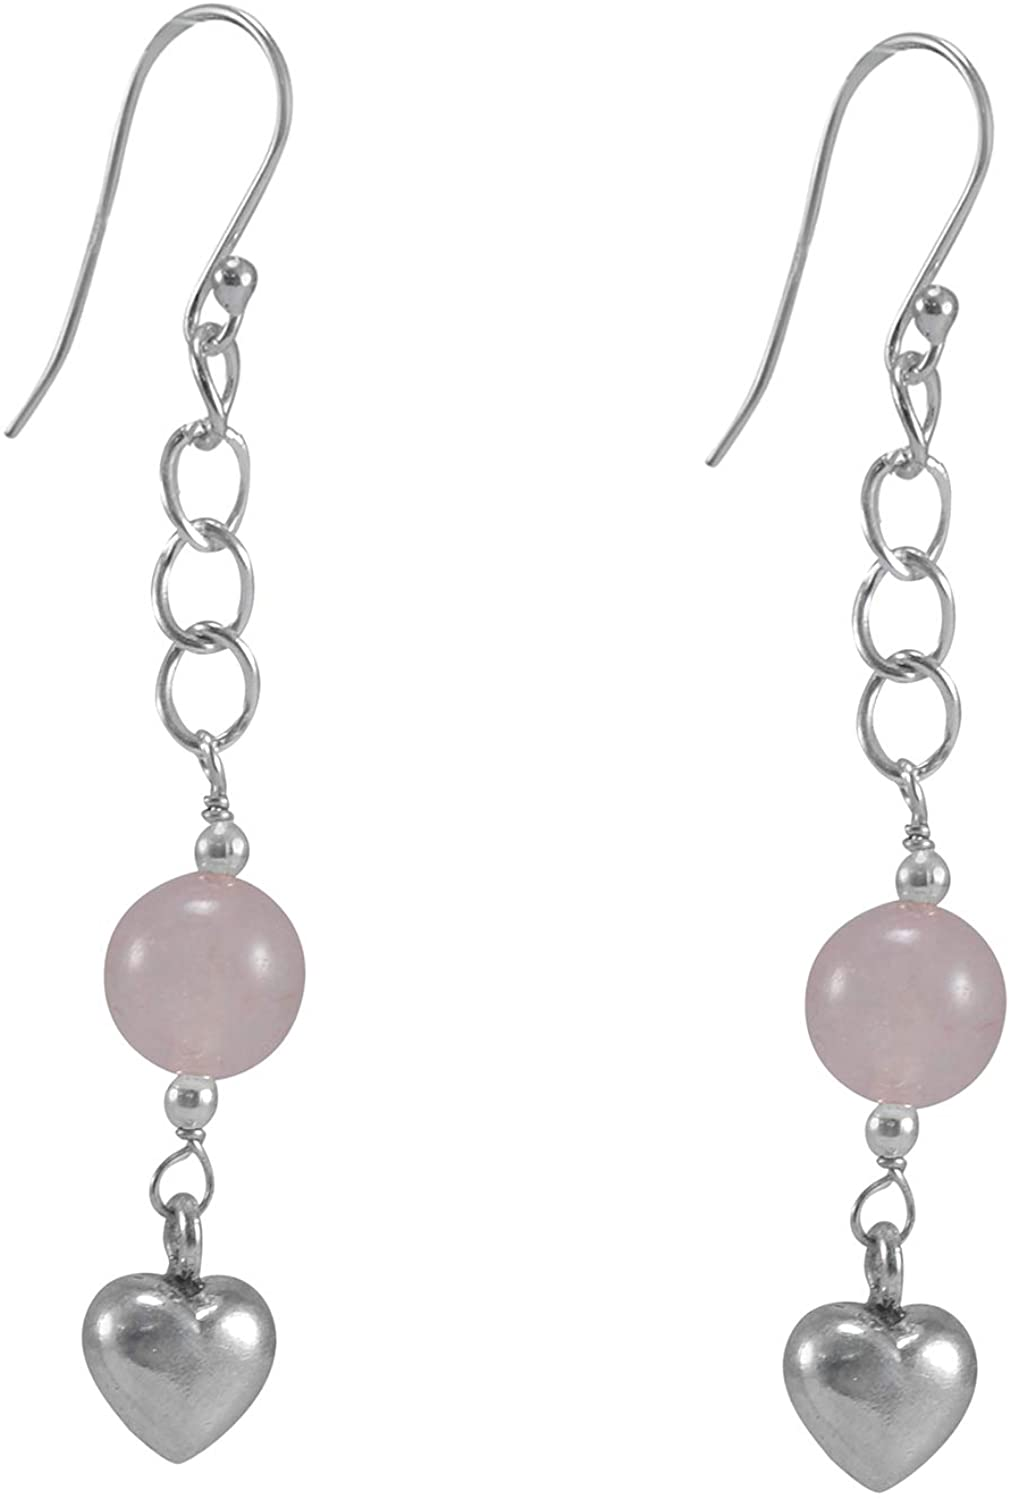 Silvesto India Rose Quartz Gemstone 925 Sterling silver Earring